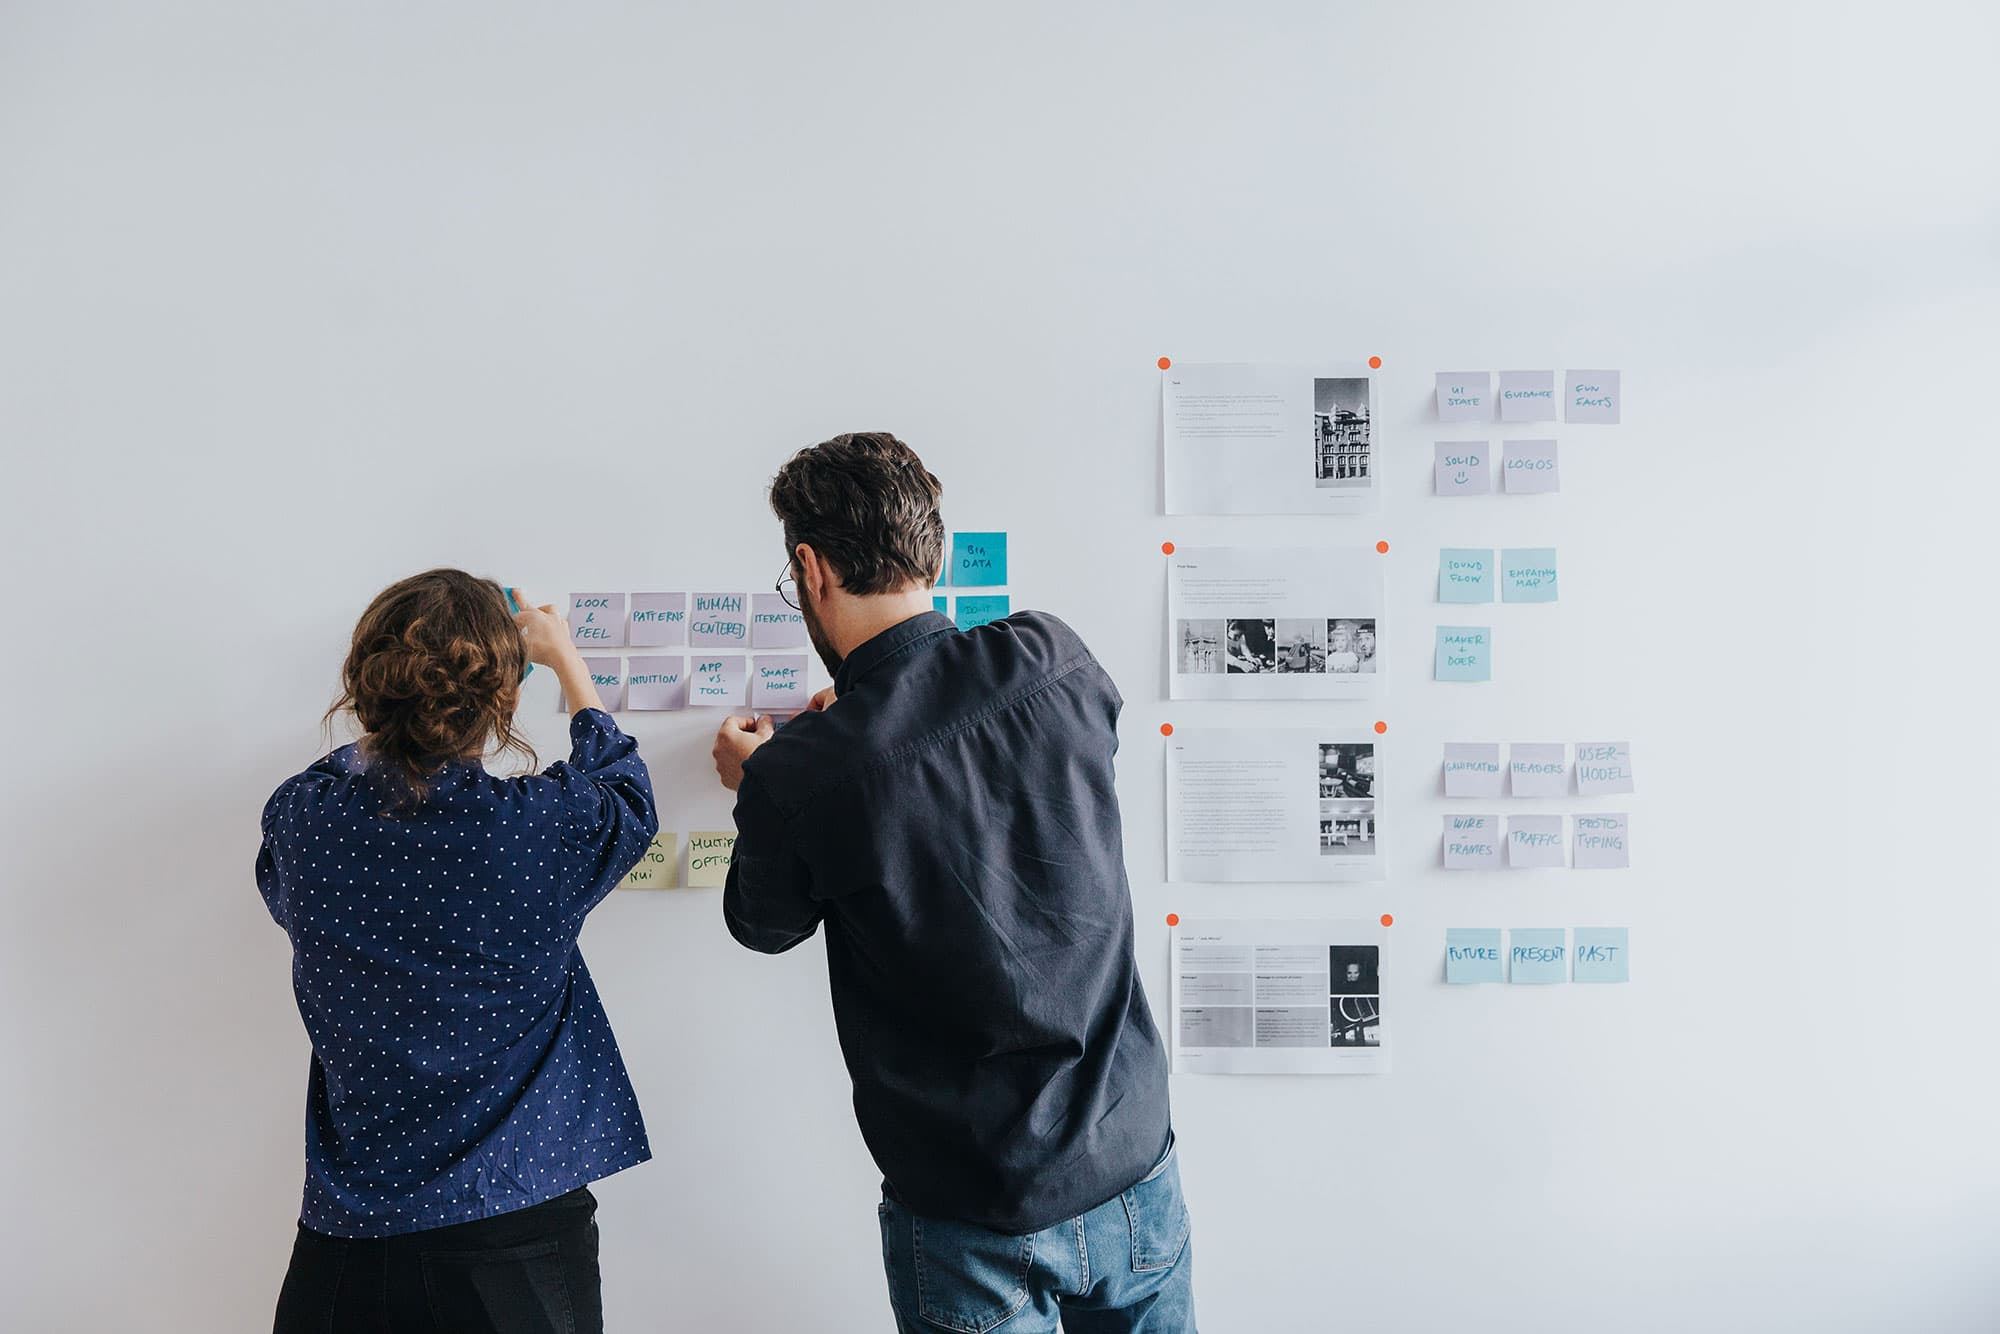 Designers using post-its for ideation workshop